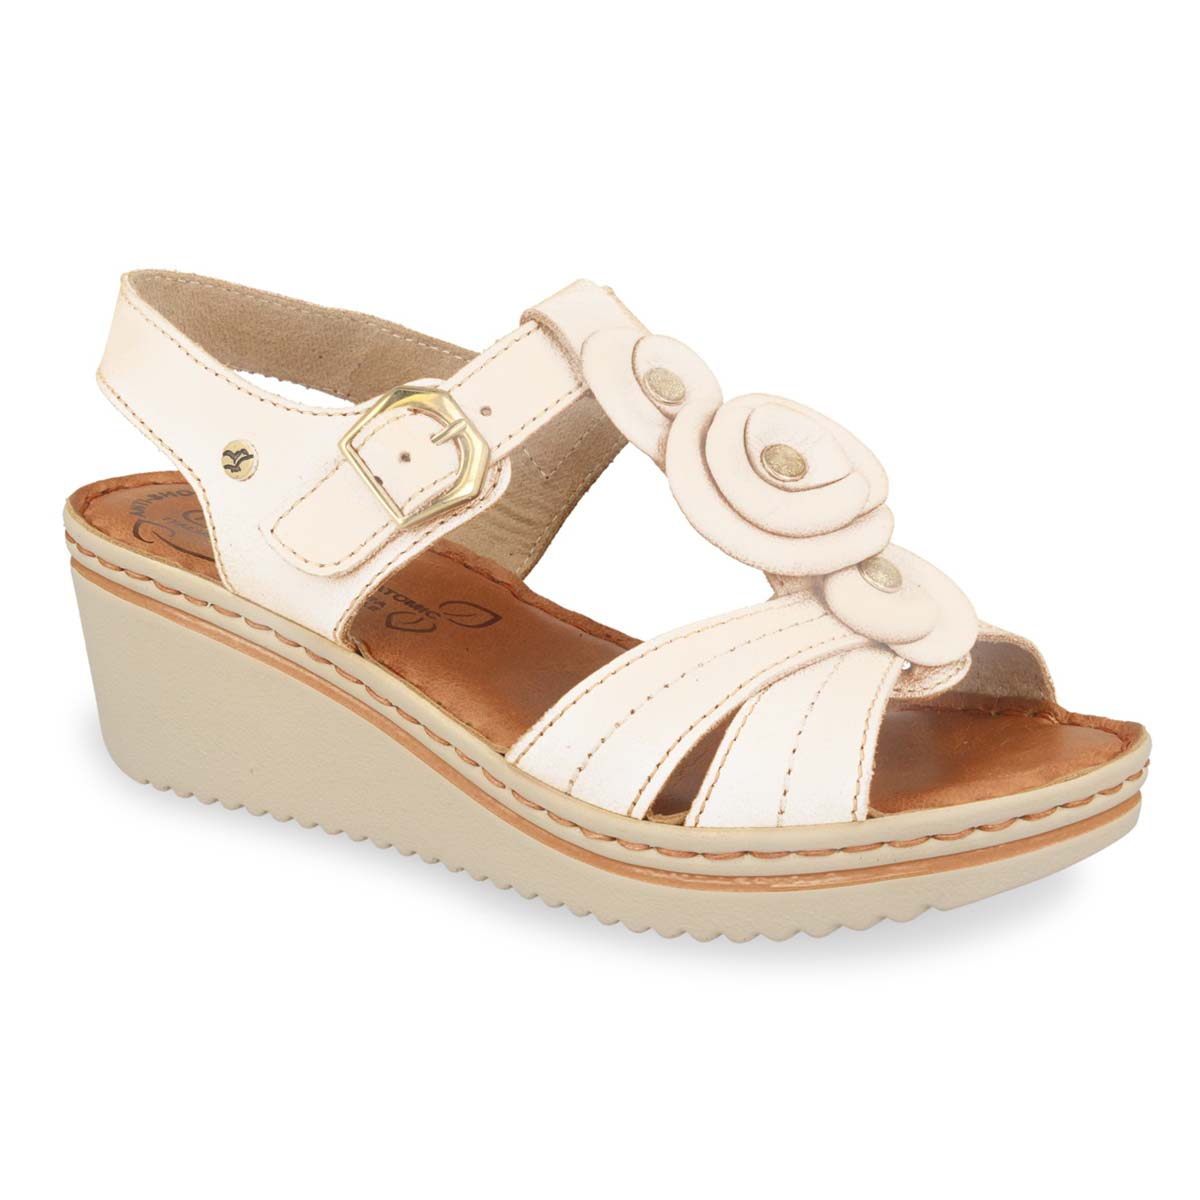 Leather Woman Sandal White (41es4bg)